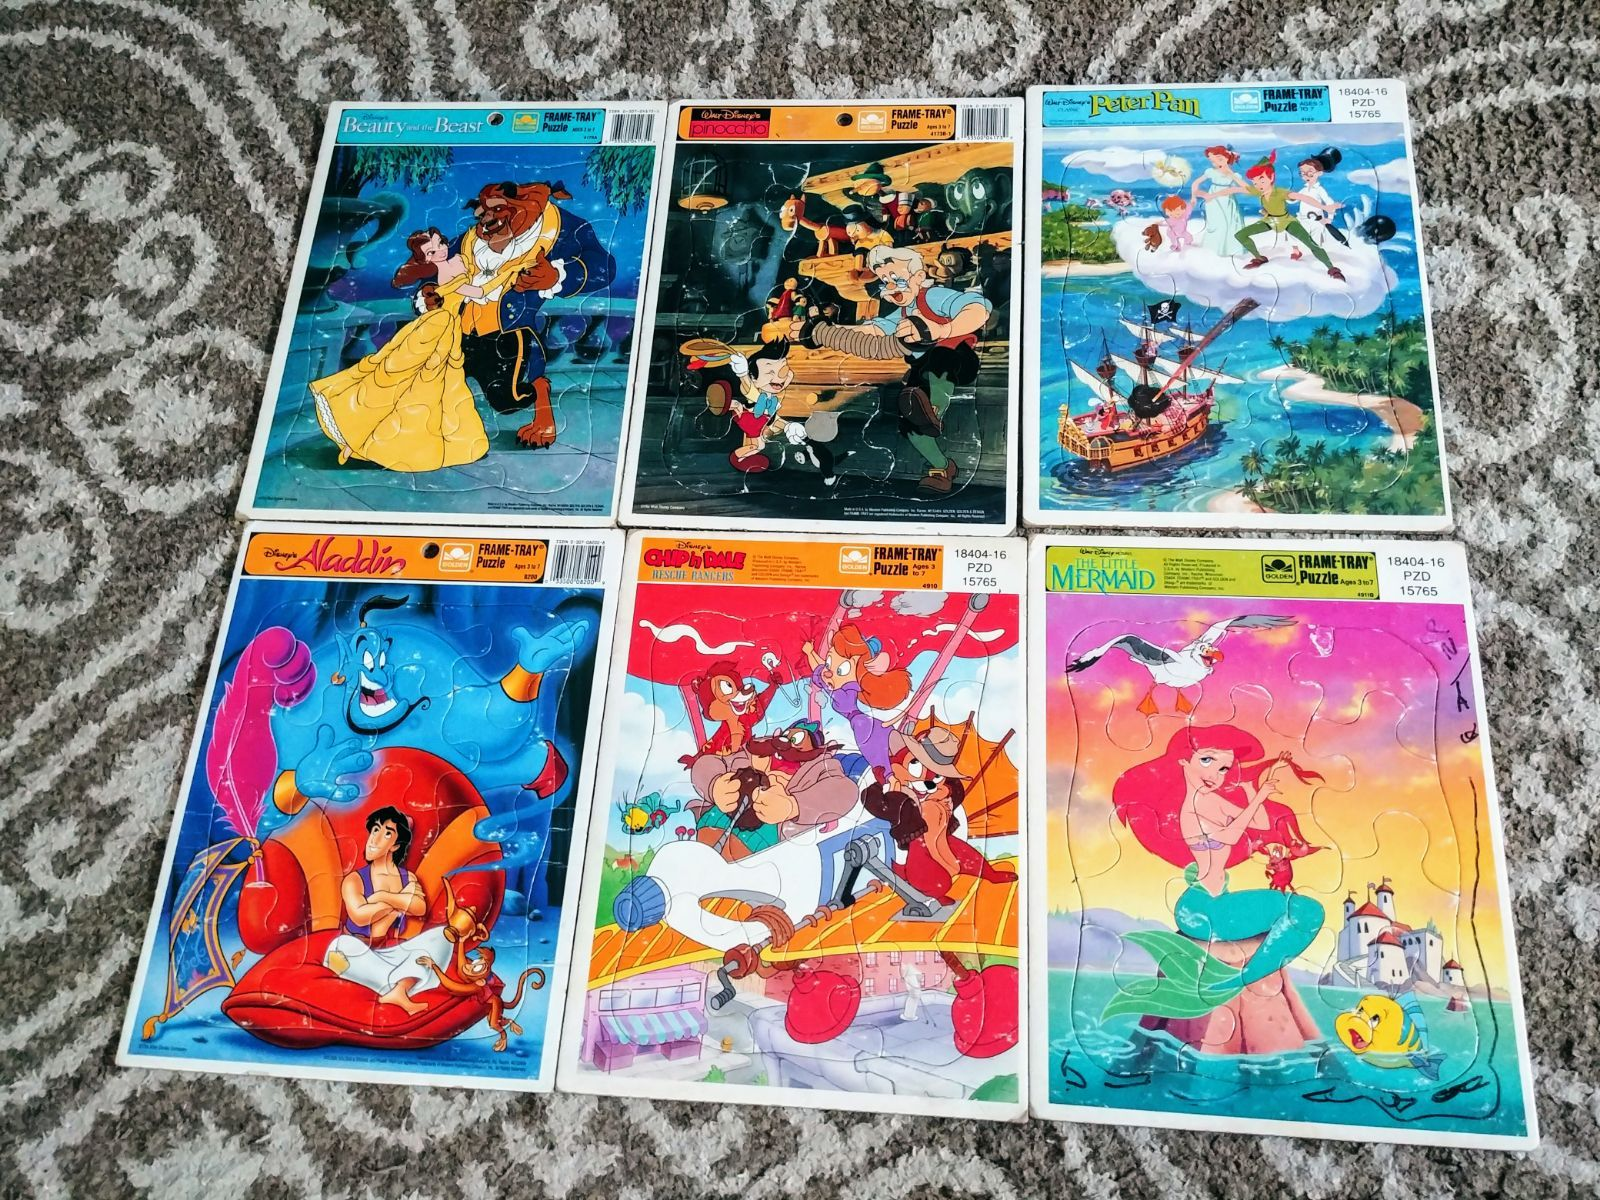 Set Of Six Vintage Disney Frame Tray Puzzles From The Nineties Includes Beauty And The Beast Pinocchio Alad Disney Frames Vintage Disney Disney Collectables